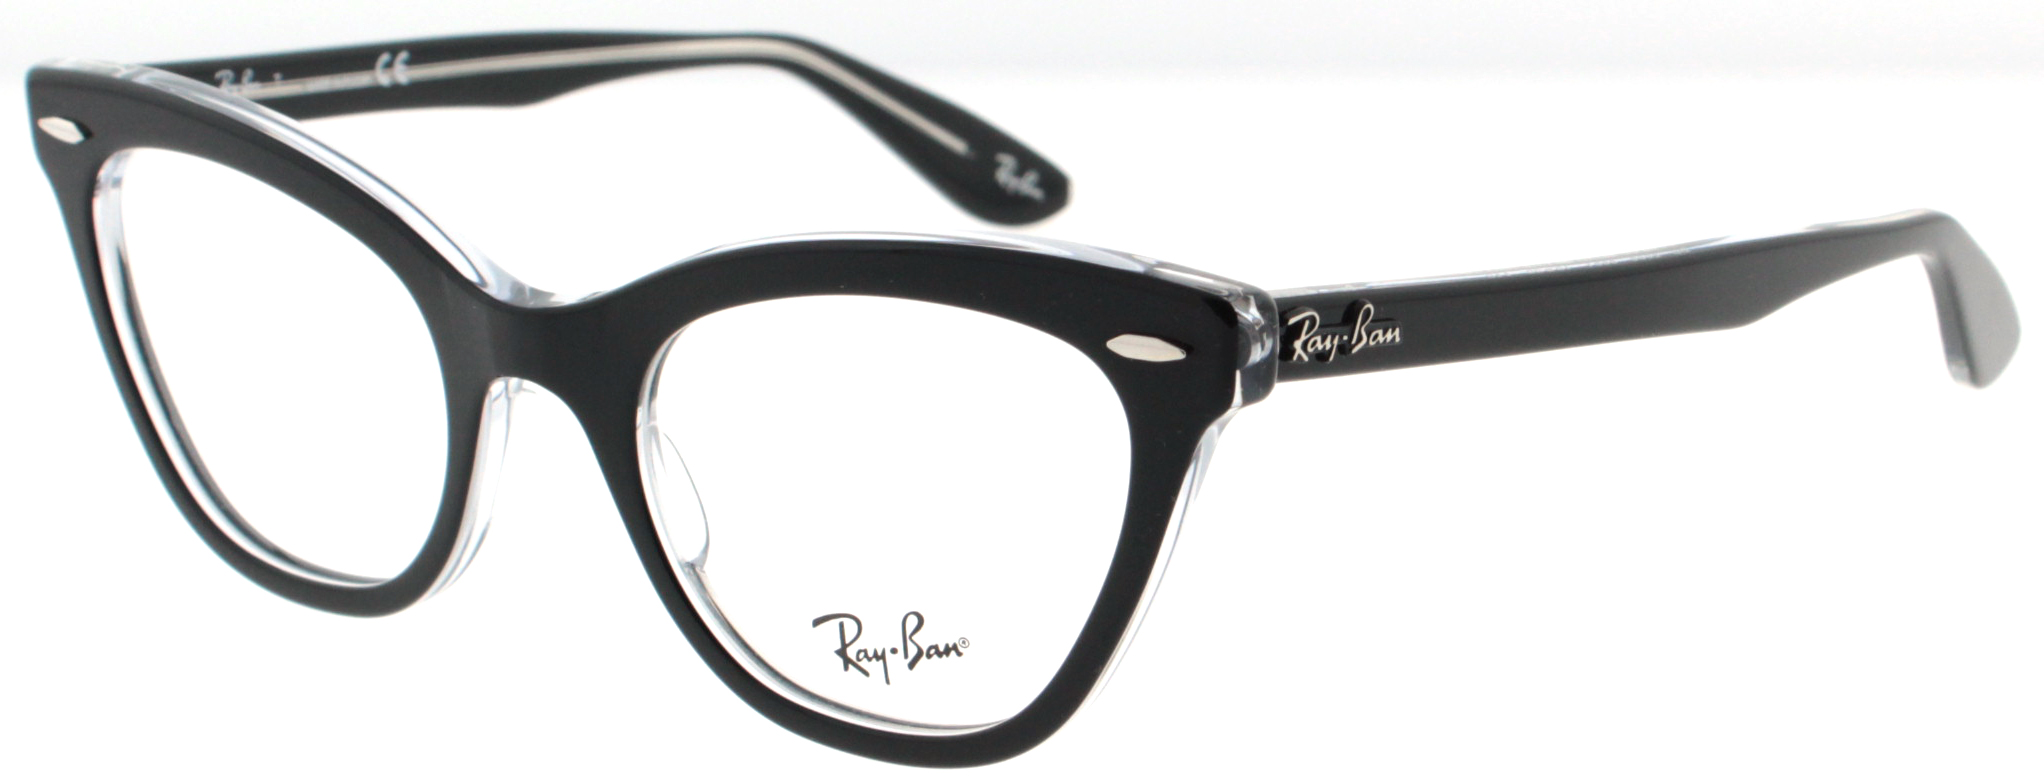 Cat Eye Ray Ban Frames